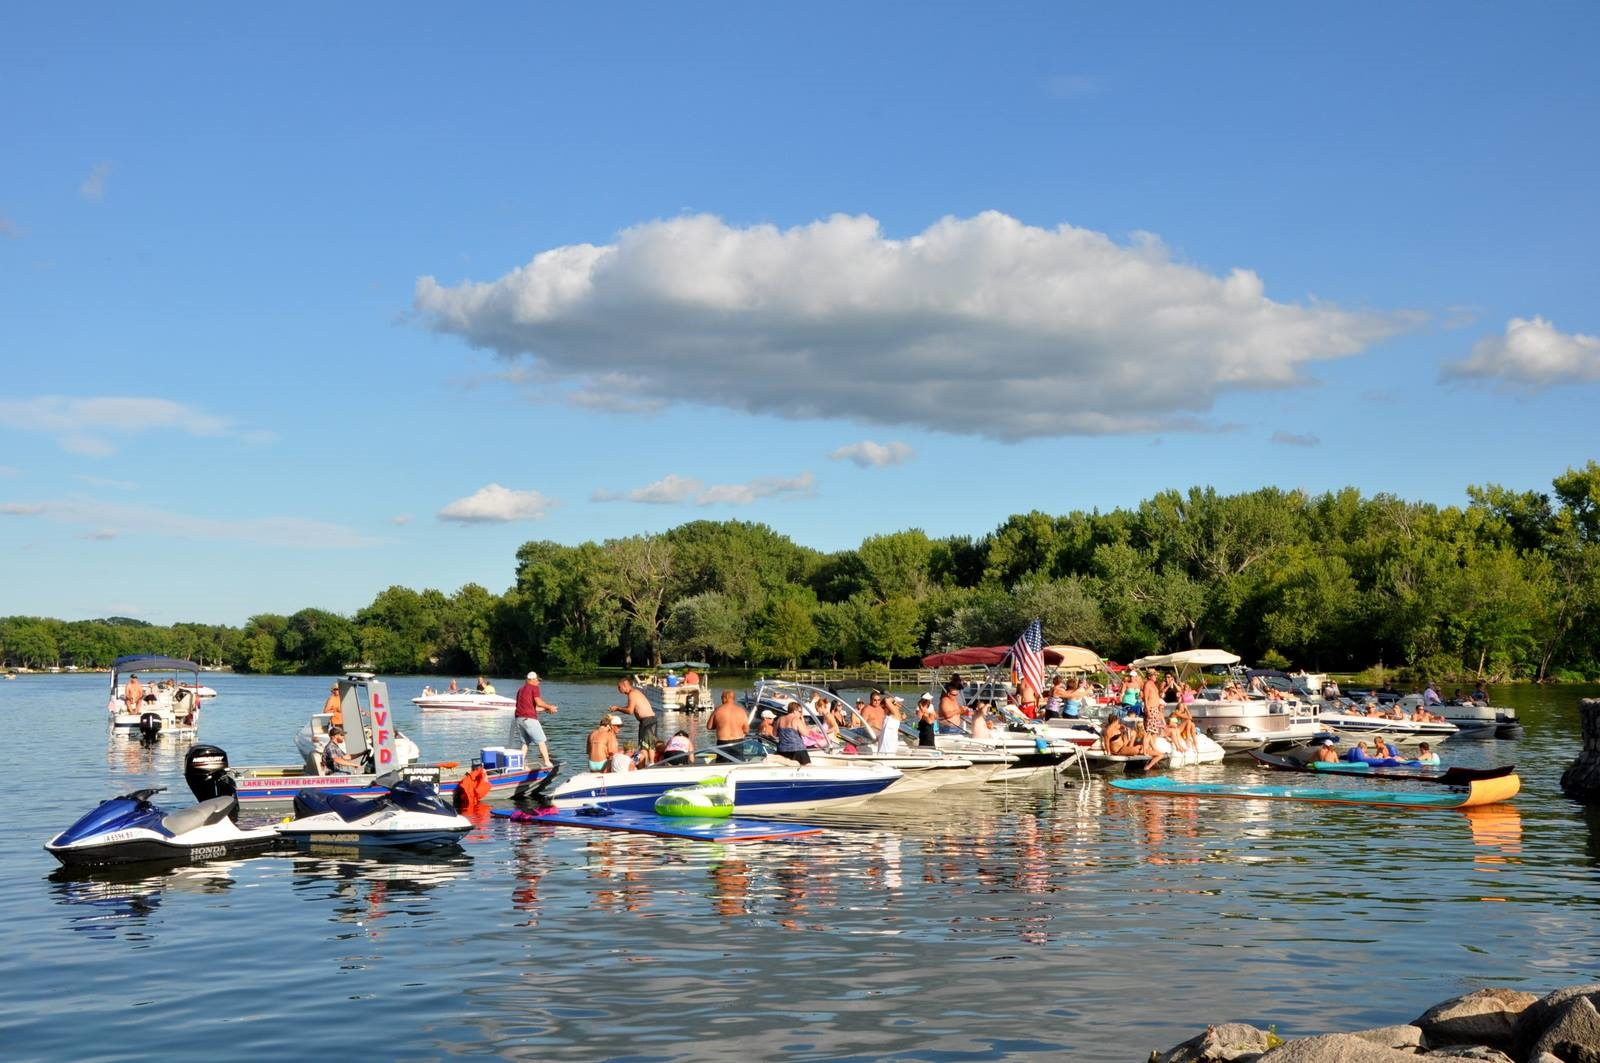 The Burger Boat - Plan to enjoy dinner at a show and if you're attending by lake, we deliver.